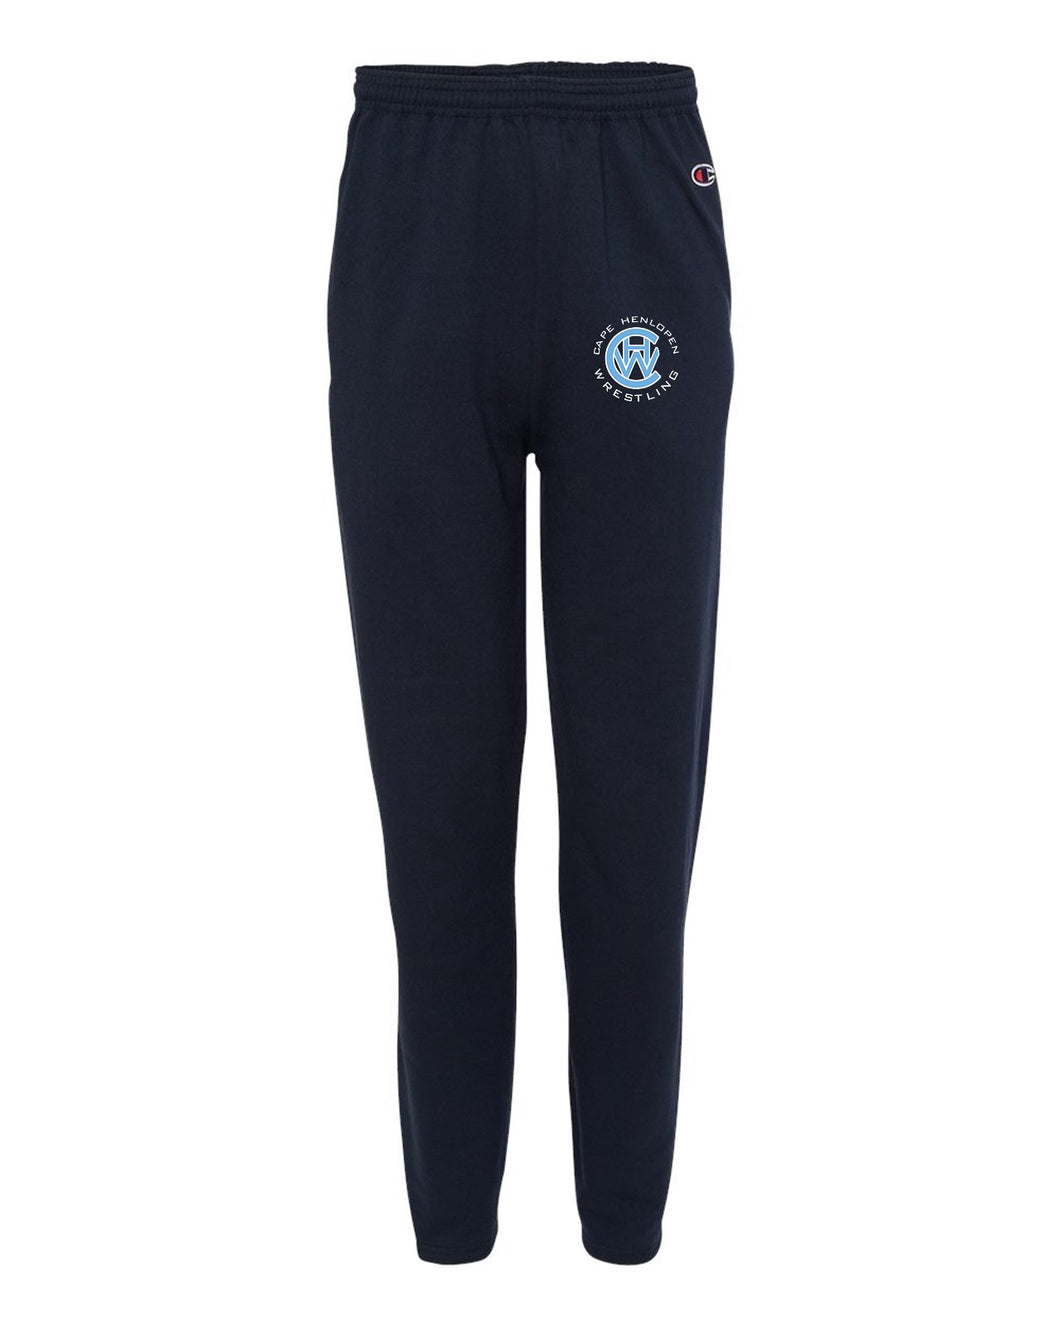 Champion - Youth Double Dry Eco Sweatpants (Open Bottom)